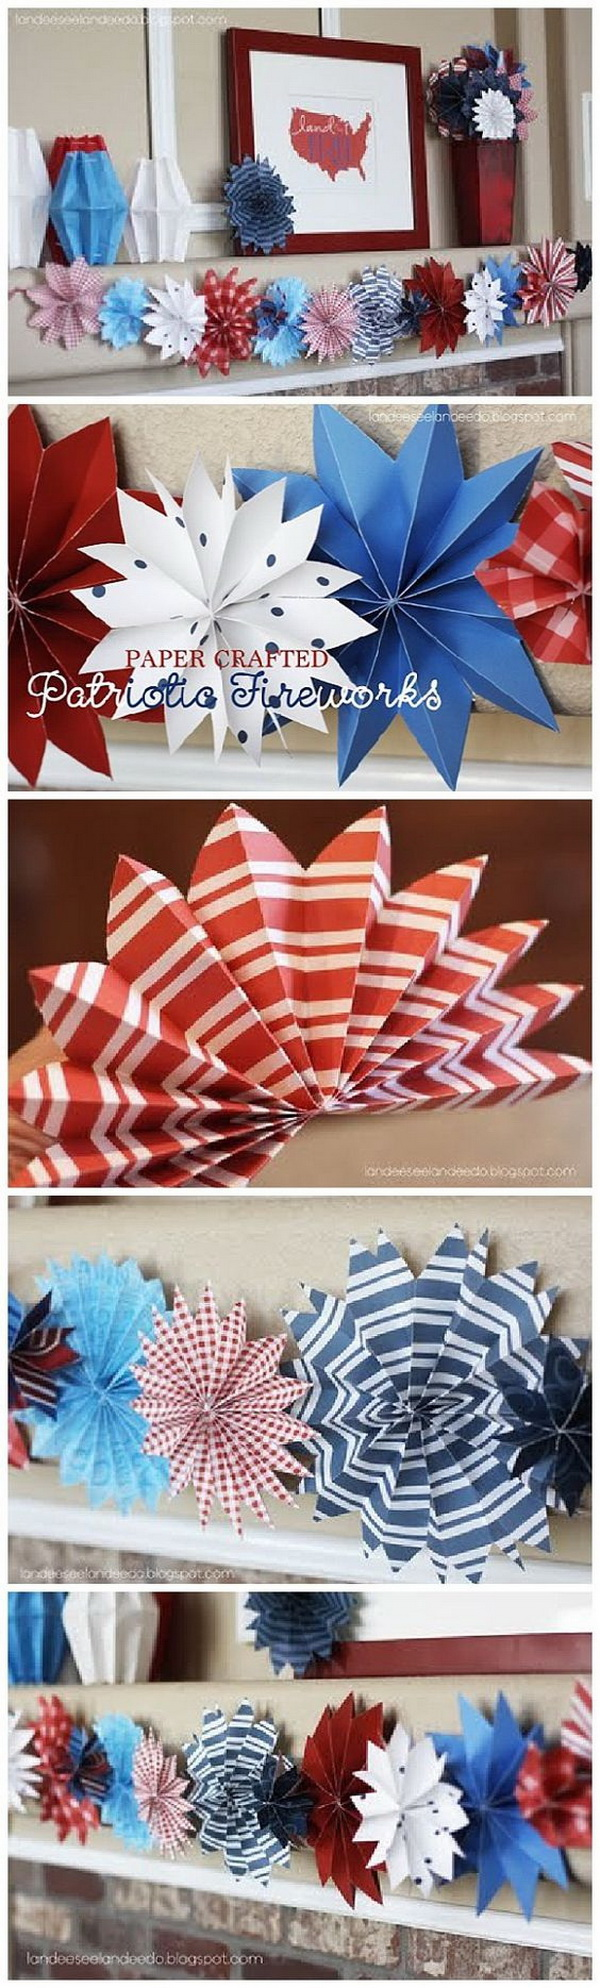 Diy Patriotic Crafts For 4th Of July Decoration For Creative Juice